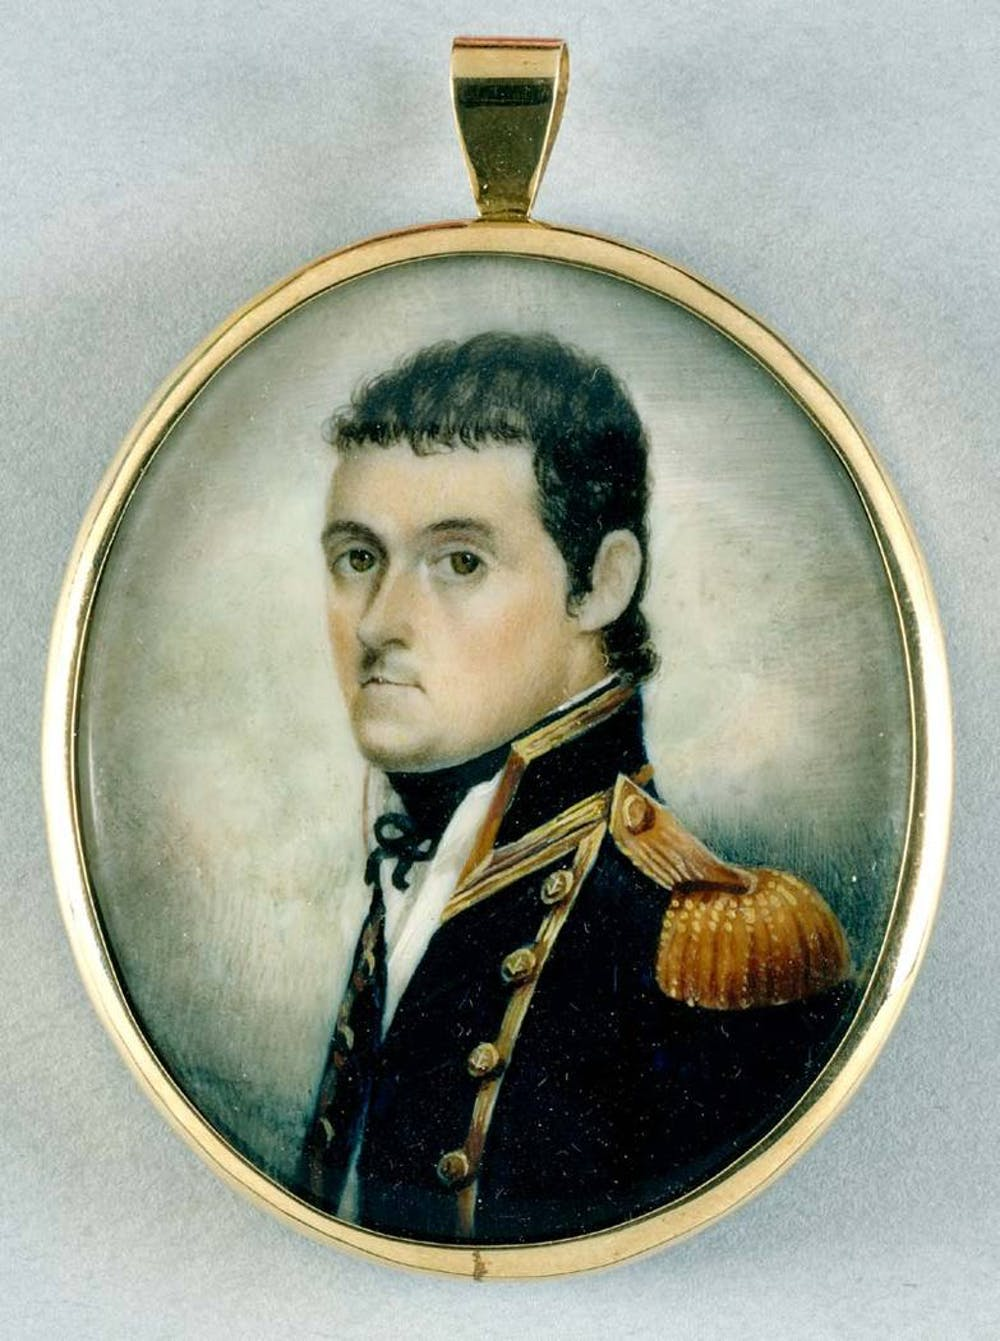 The limits of empathy: Matthew Flinders' encounters with Indigenous